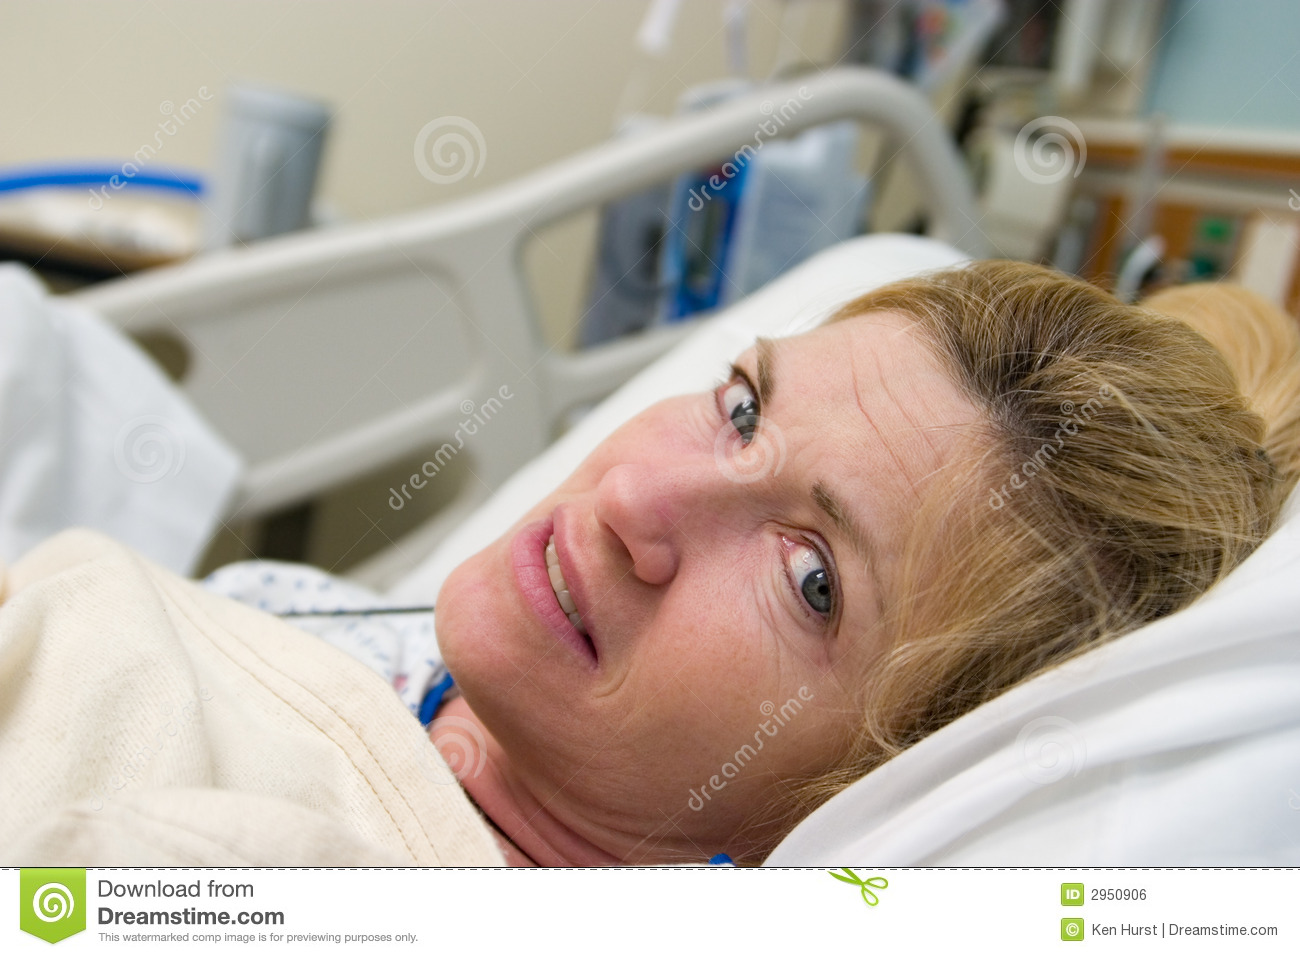 Sick Patient In Hospital Bed : Sick Patient In Hospital Bed Royalty Free Stock Image - Image: 2950906